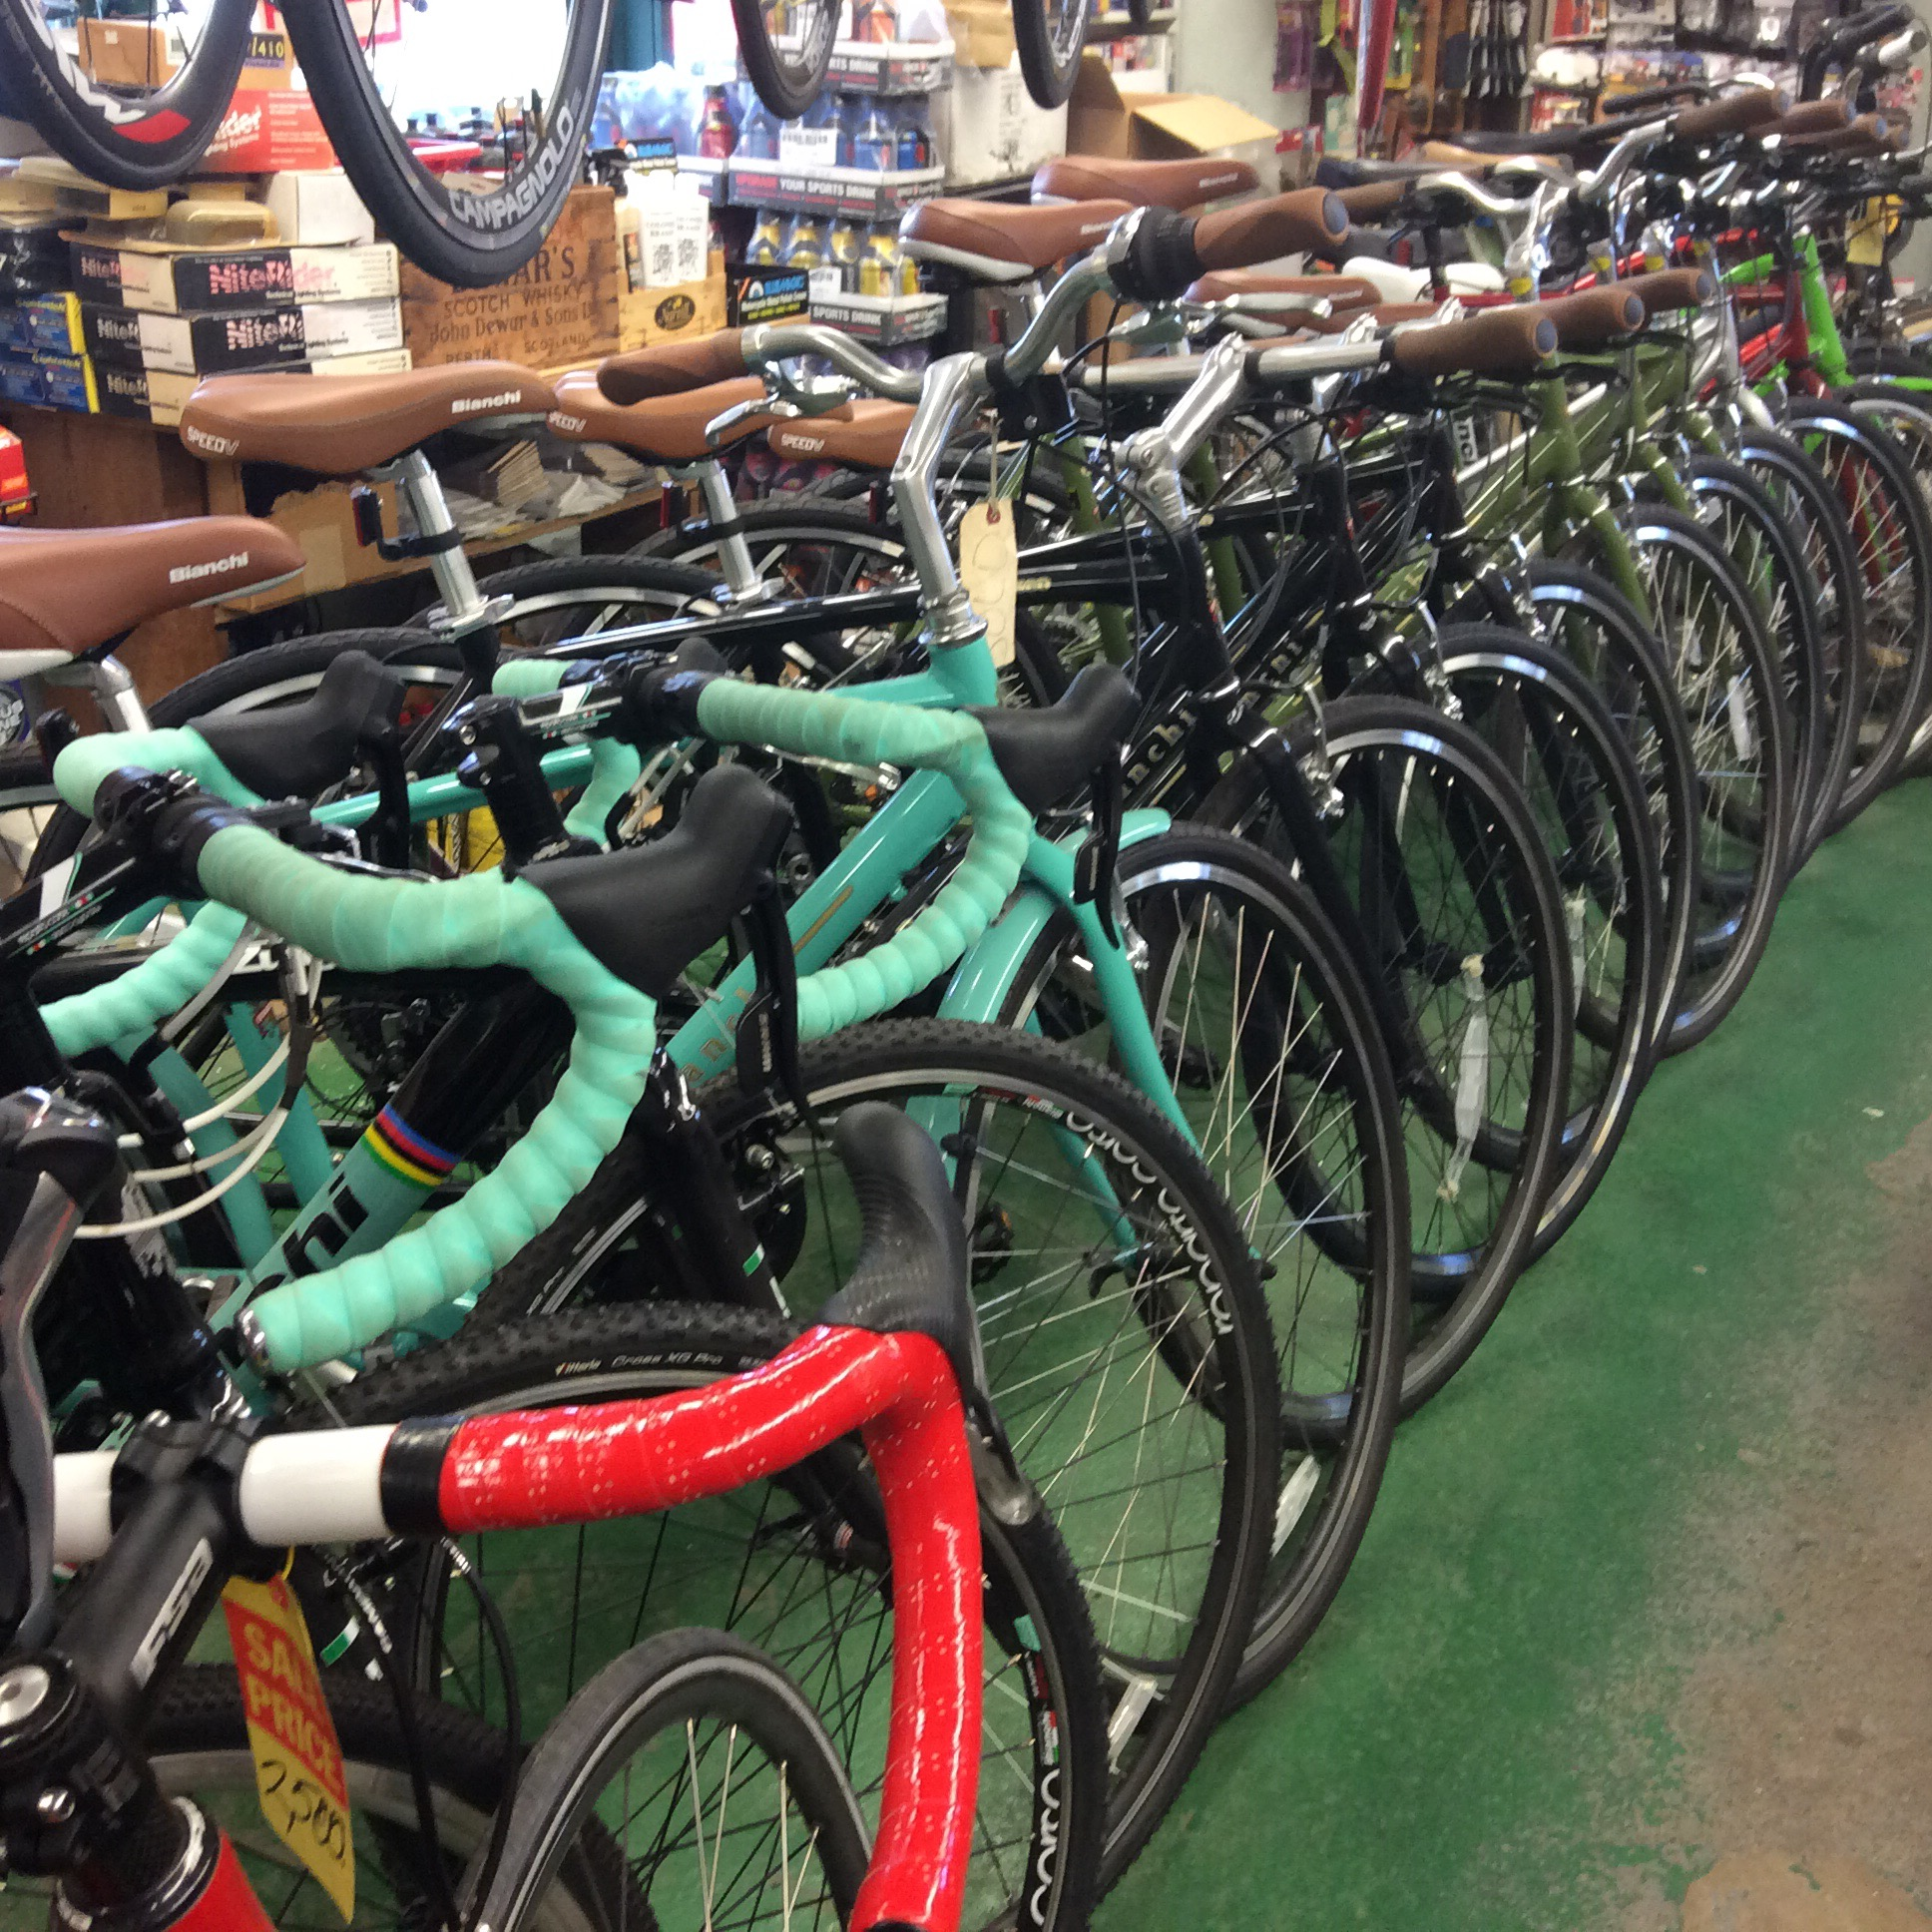 Two Bianchi 'cross bikes ready for the fall race season, and numerous Bianchi commuter bikes ready for leisure life.